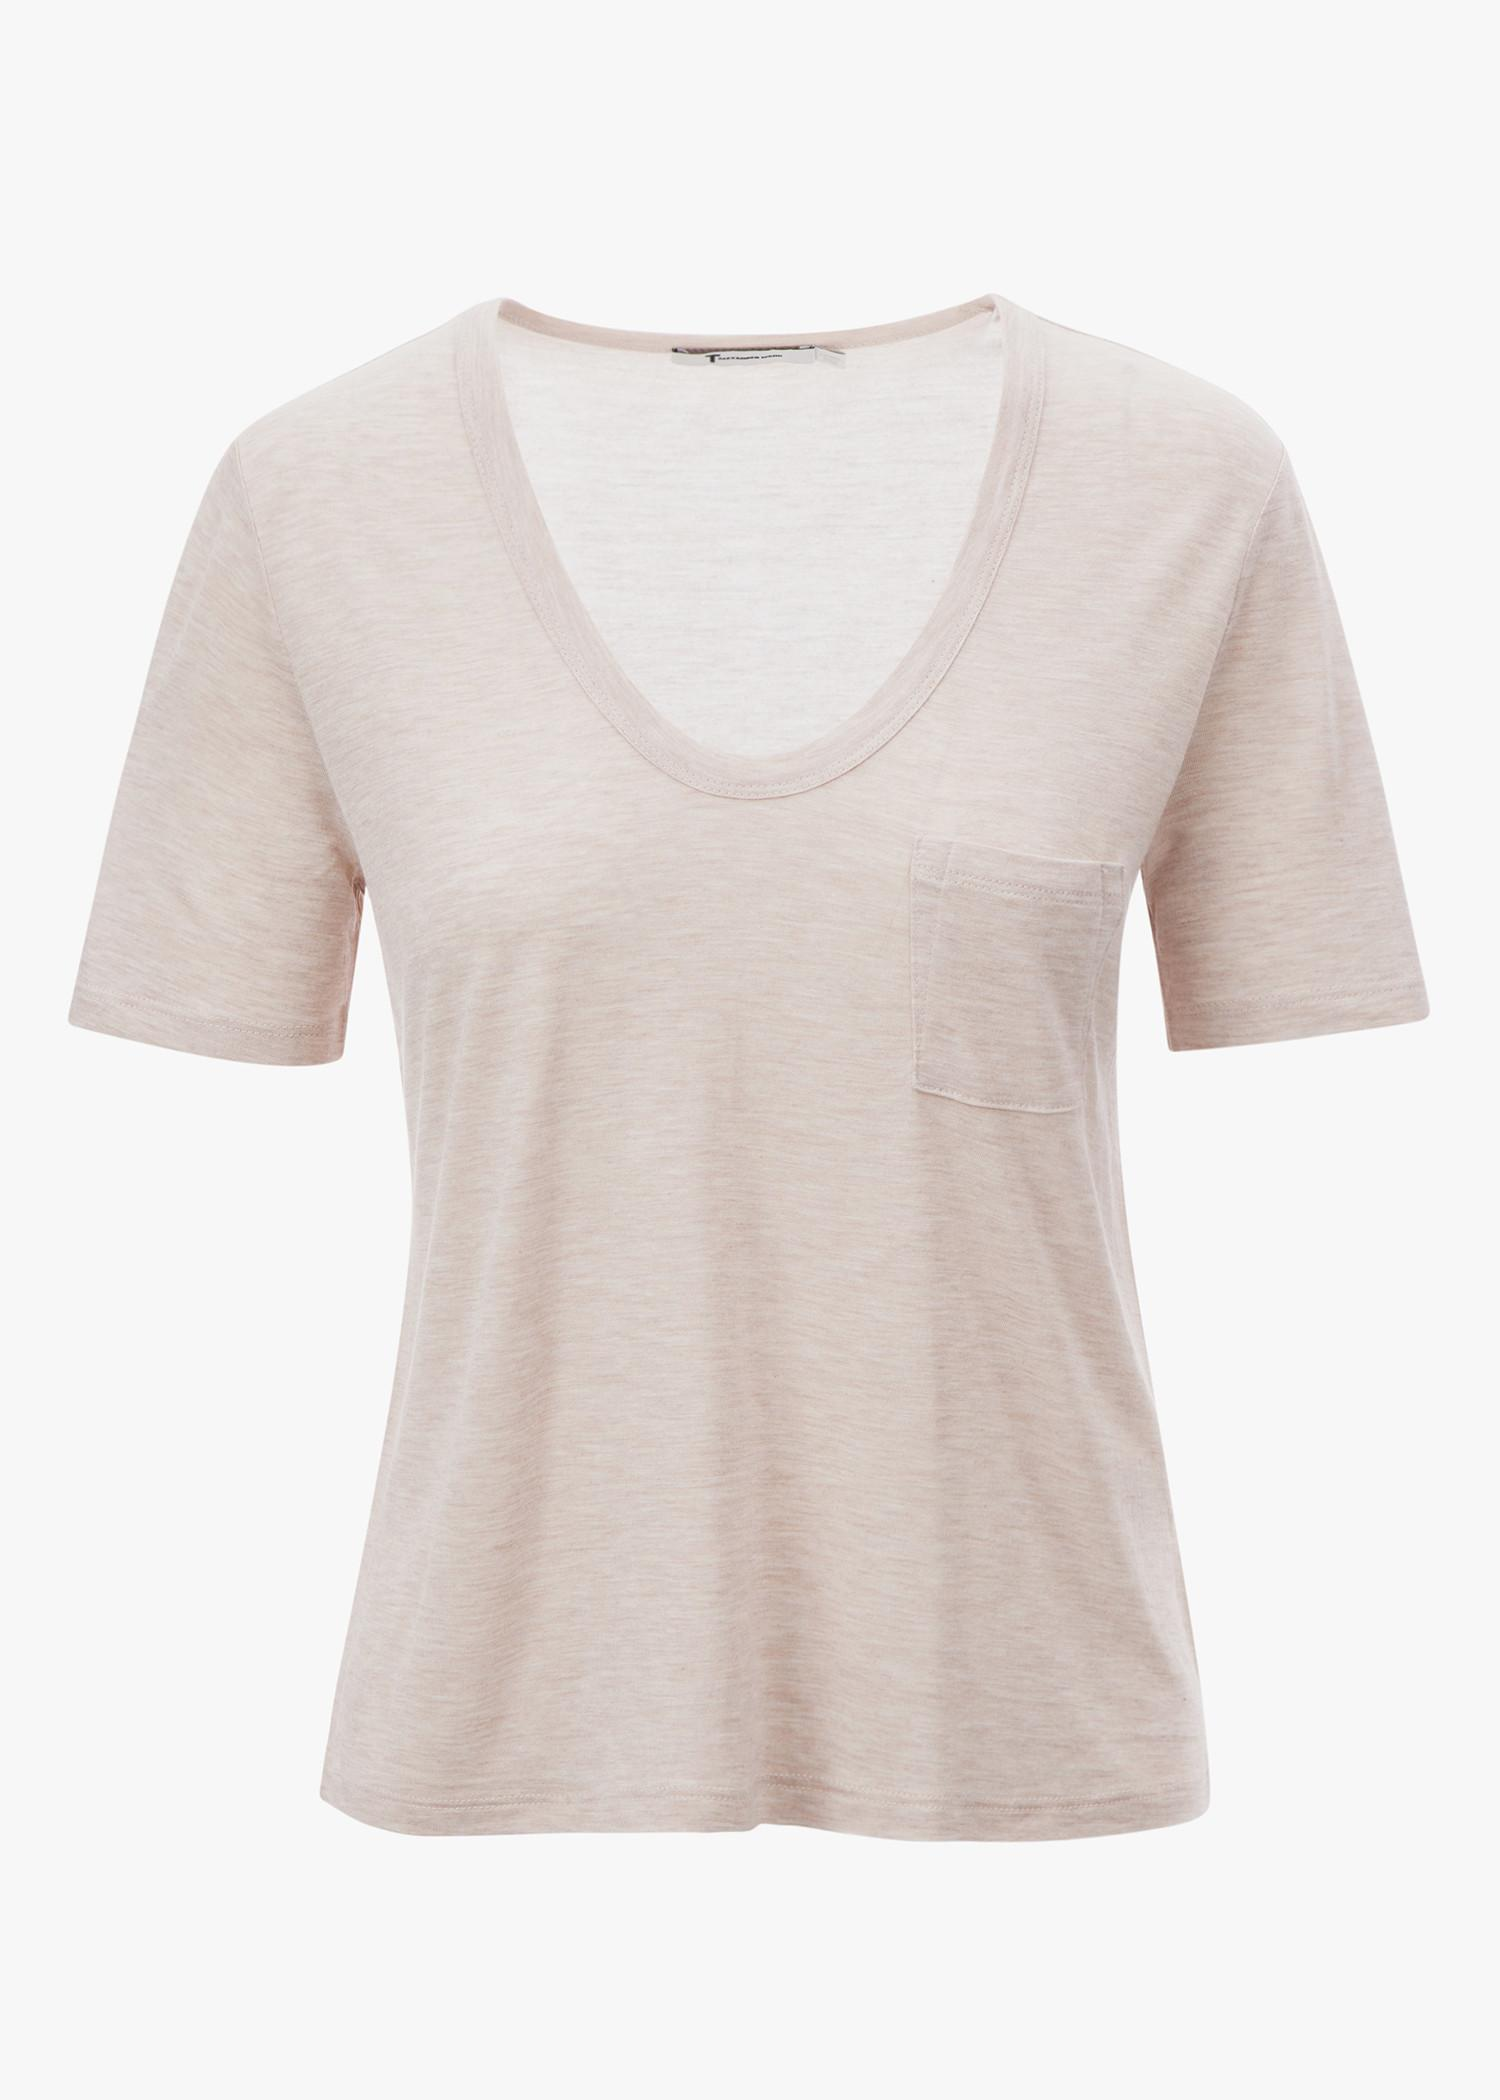 T By Alexander Wang Short Sleeve Cropped Pocket Tee In Blush